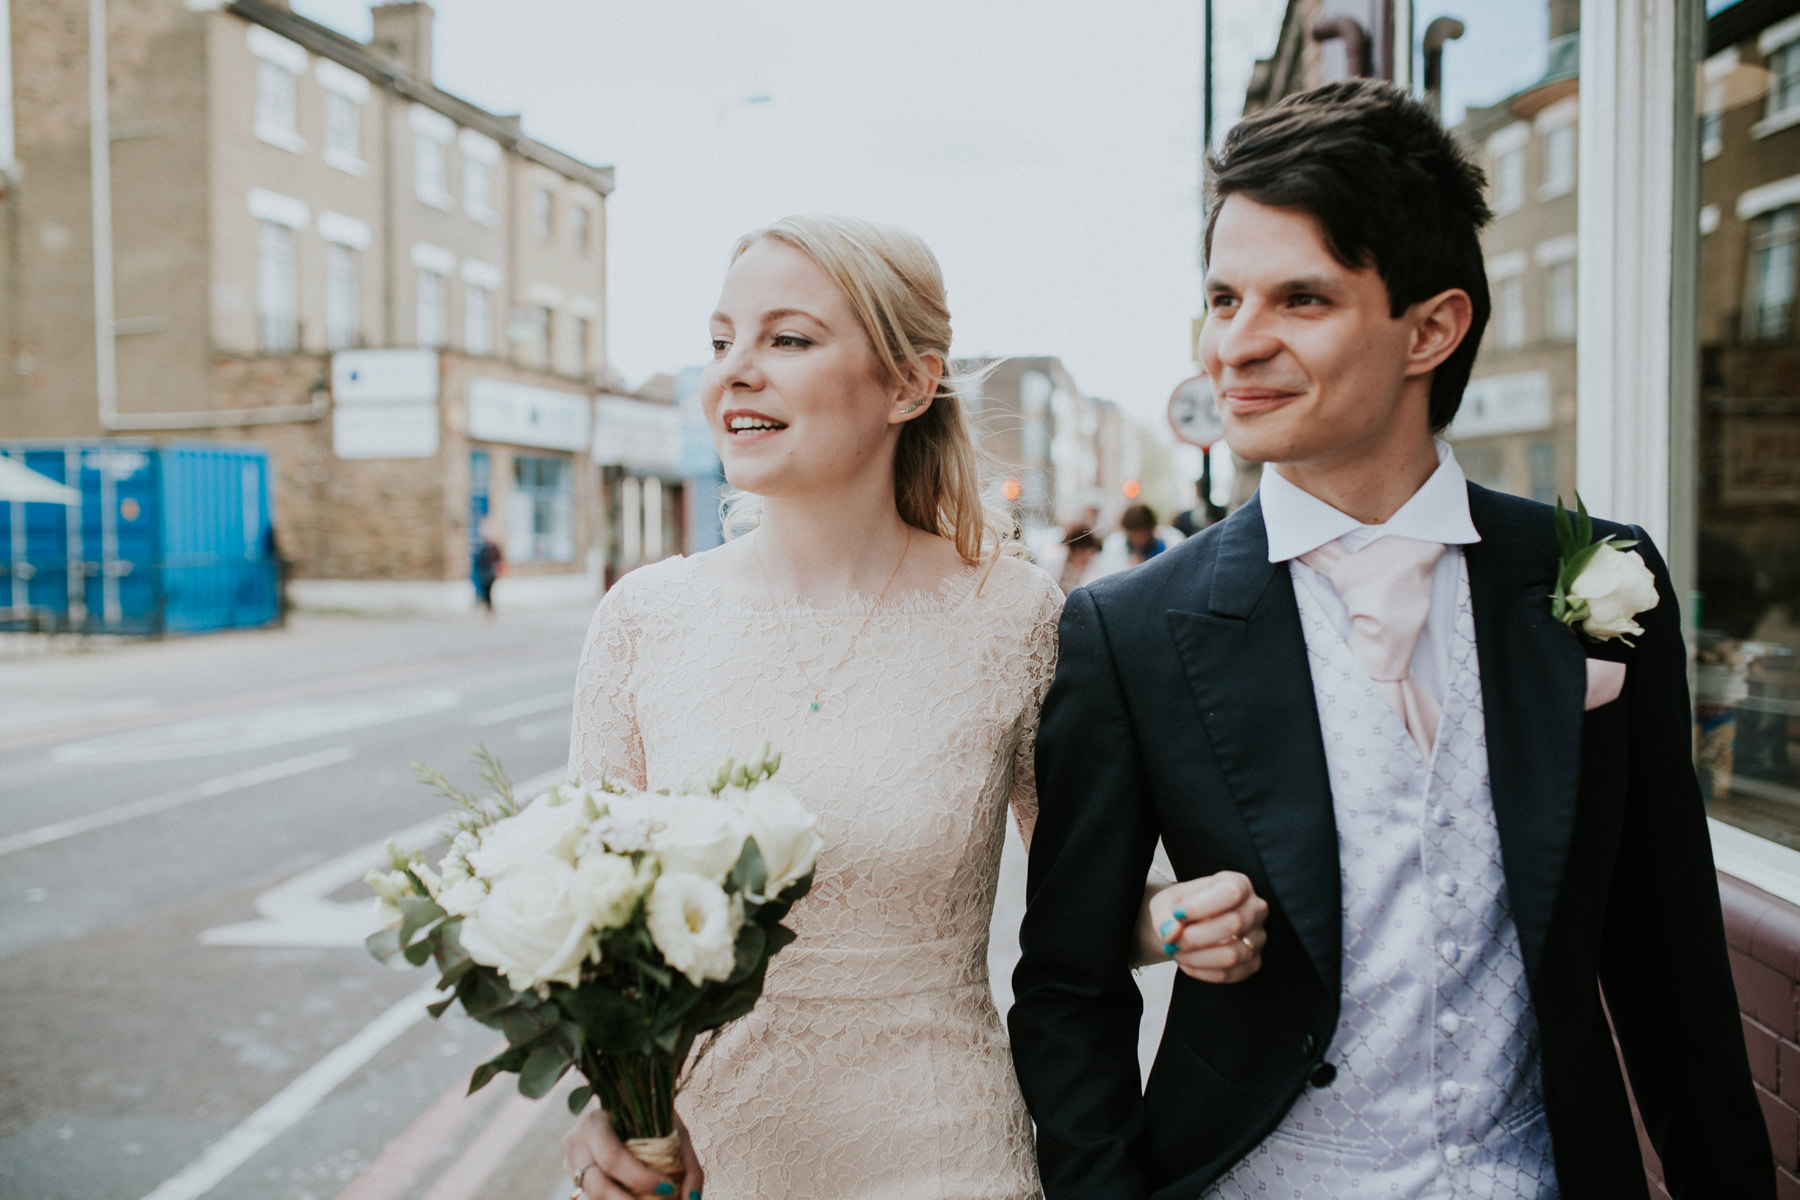 LD-373-Lulu-David-walking-Clapham-Common-wedding.jpg